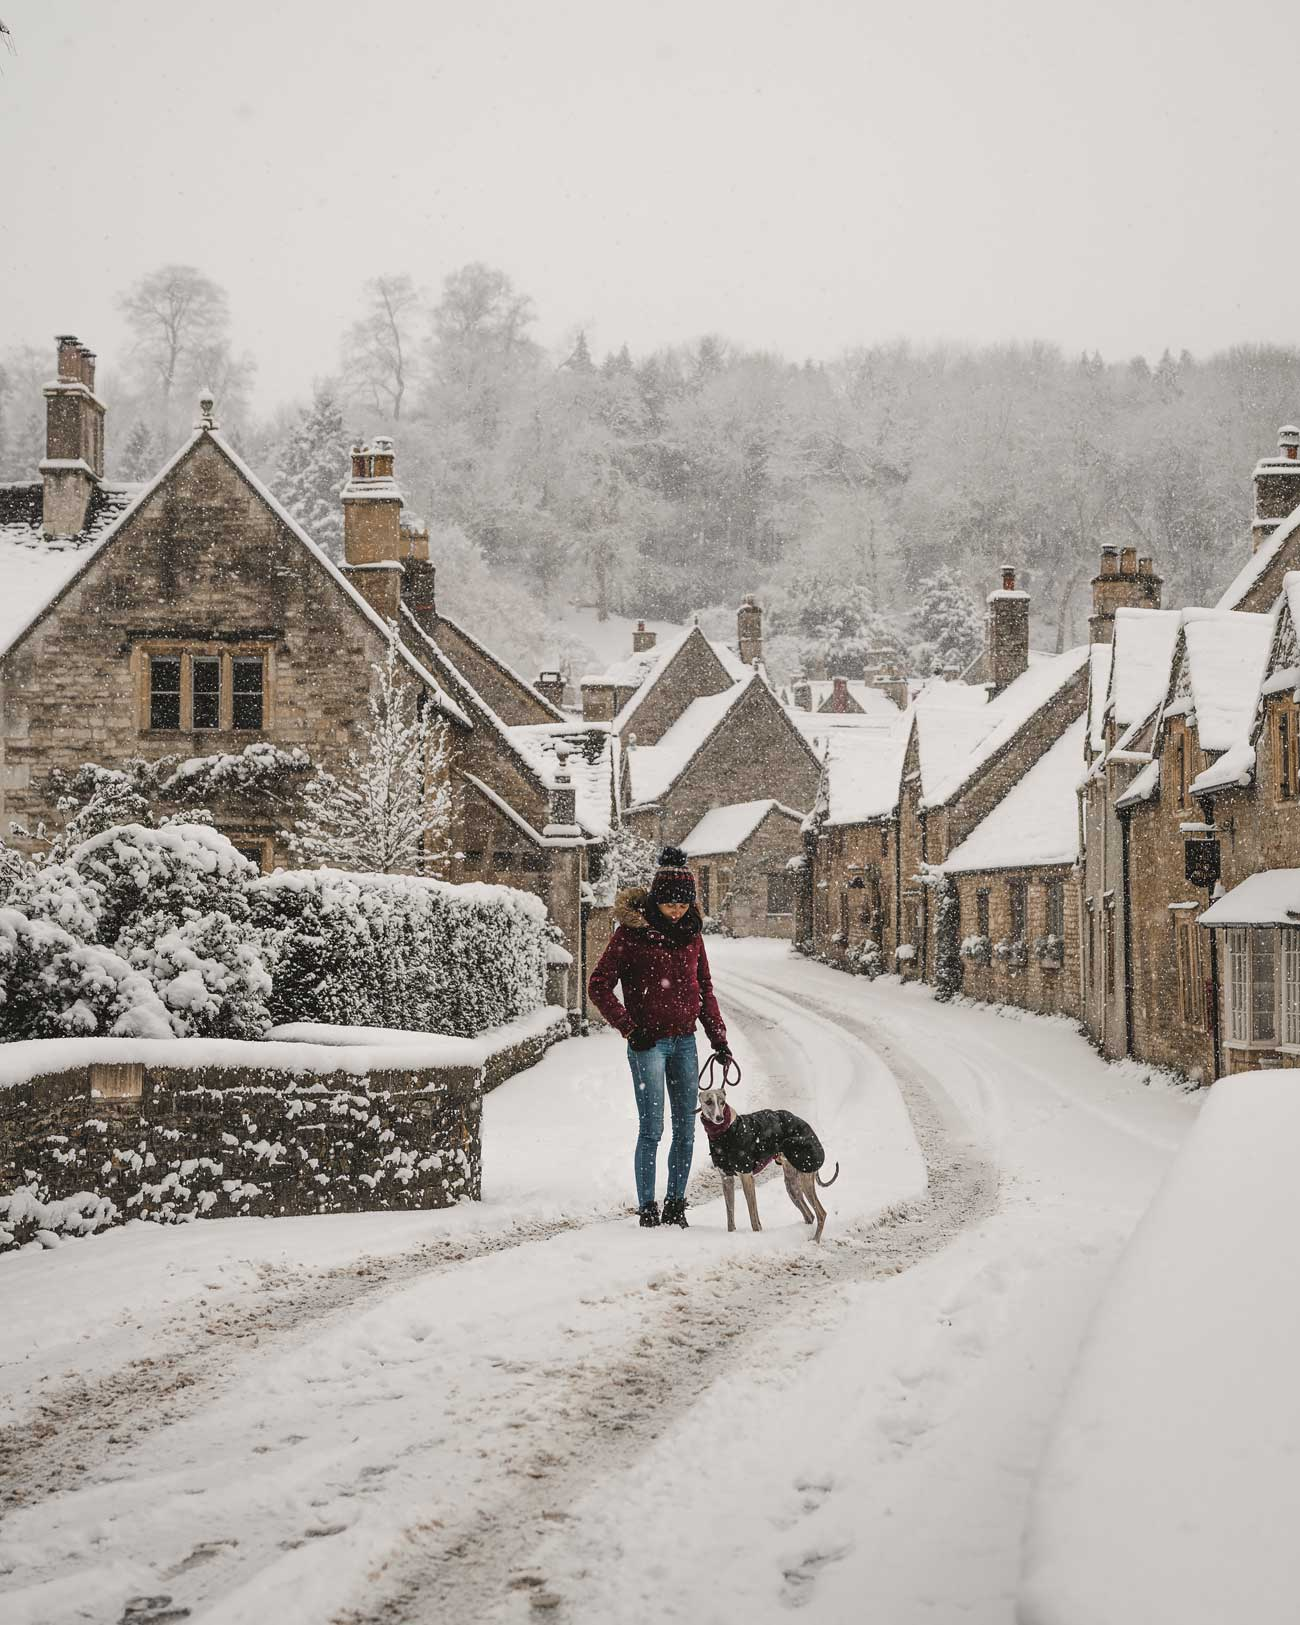 Winter Wonderland in the Cotswolds: English Villages covered in snow